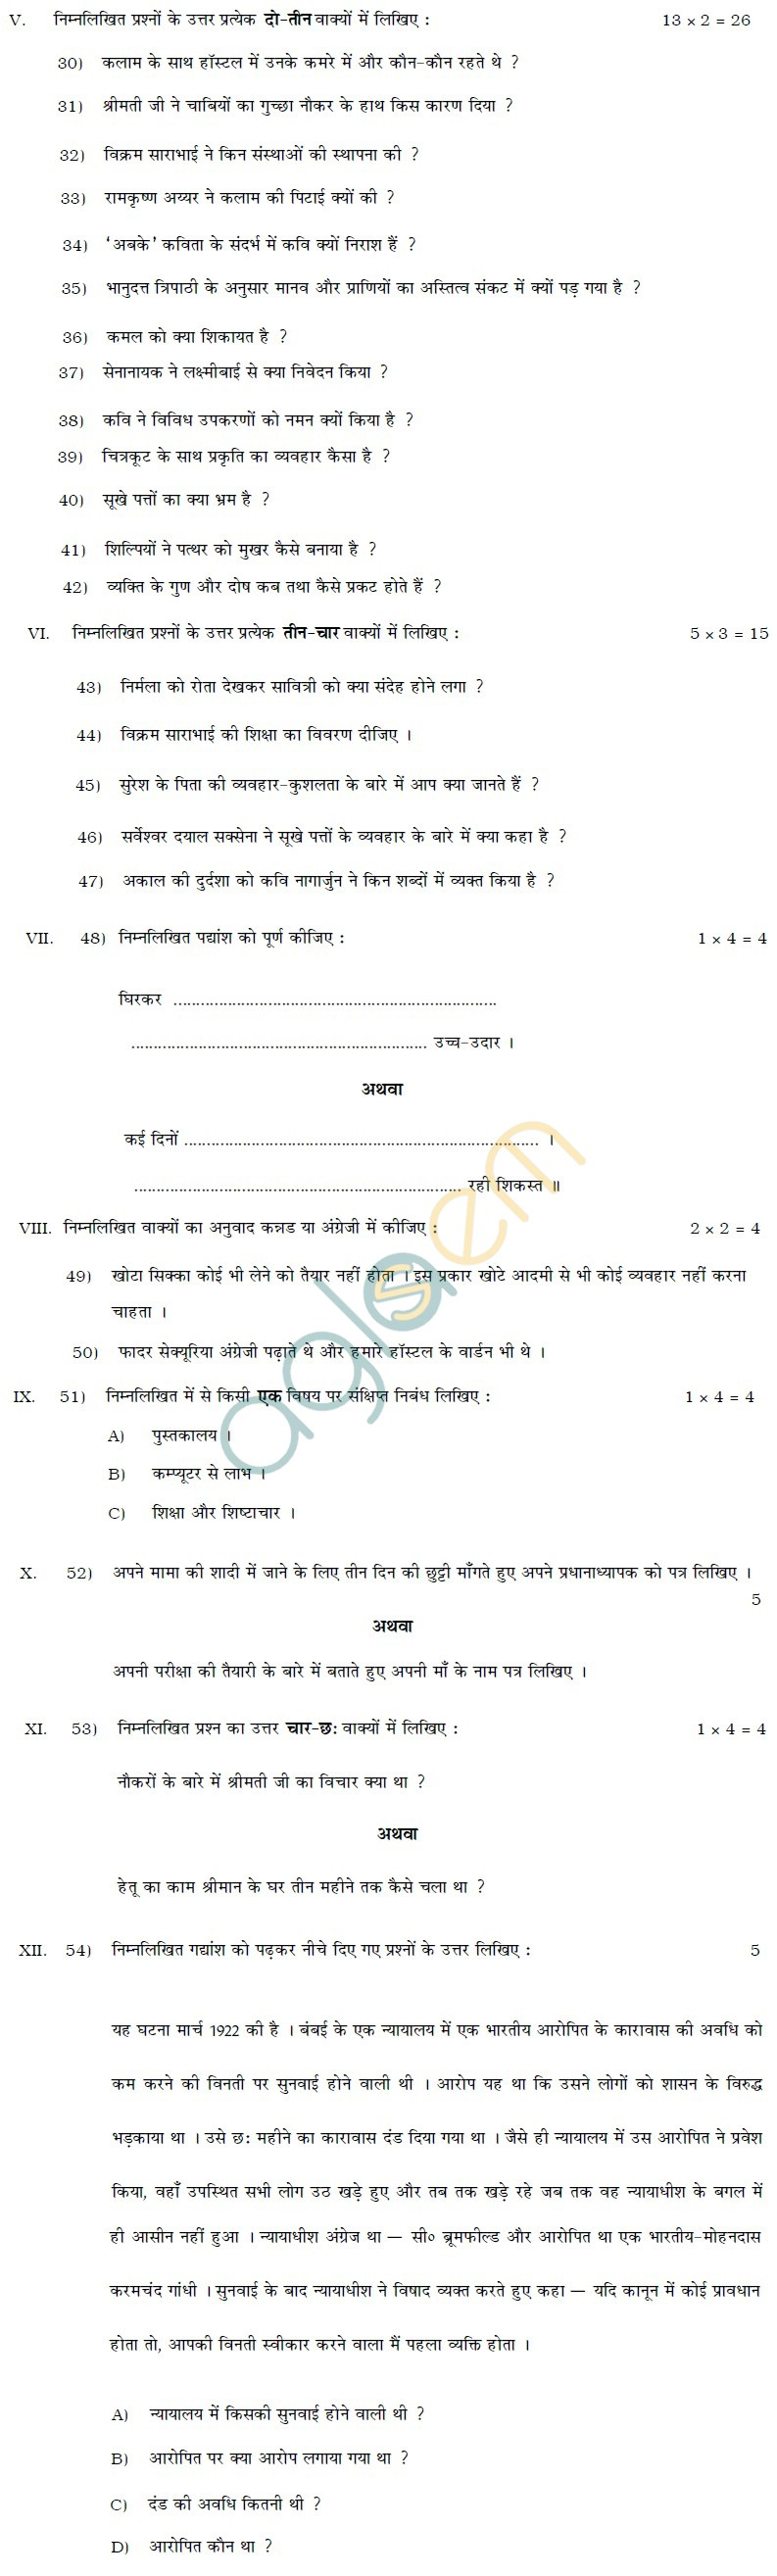 Karnataka SSLC Solved Question Paper June 2014 - Hindi III